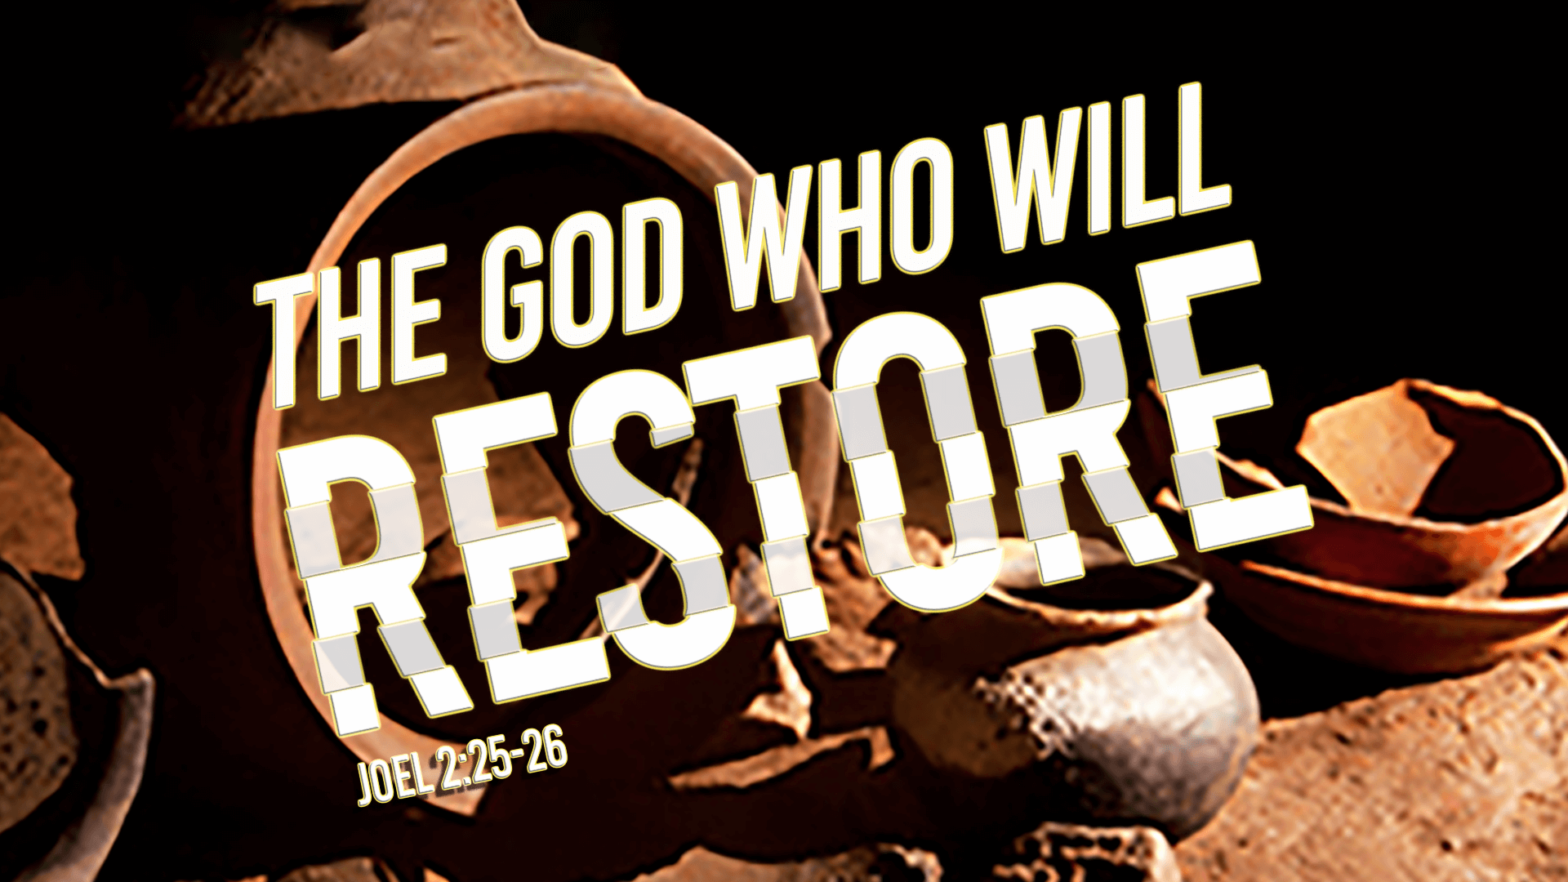 The God Who Will Restore